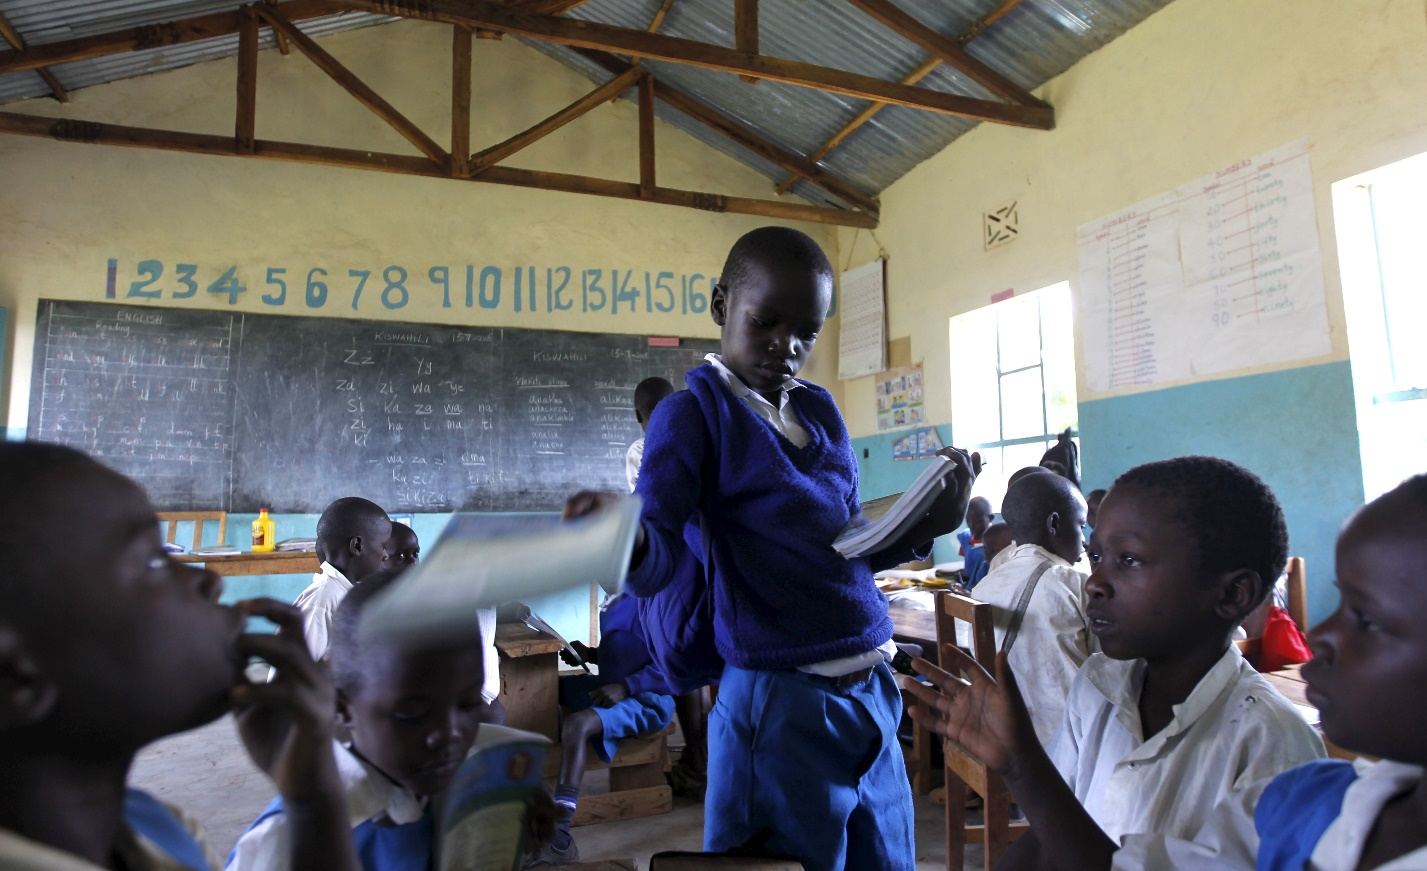 Learning in East Africa: Where are children advancing?